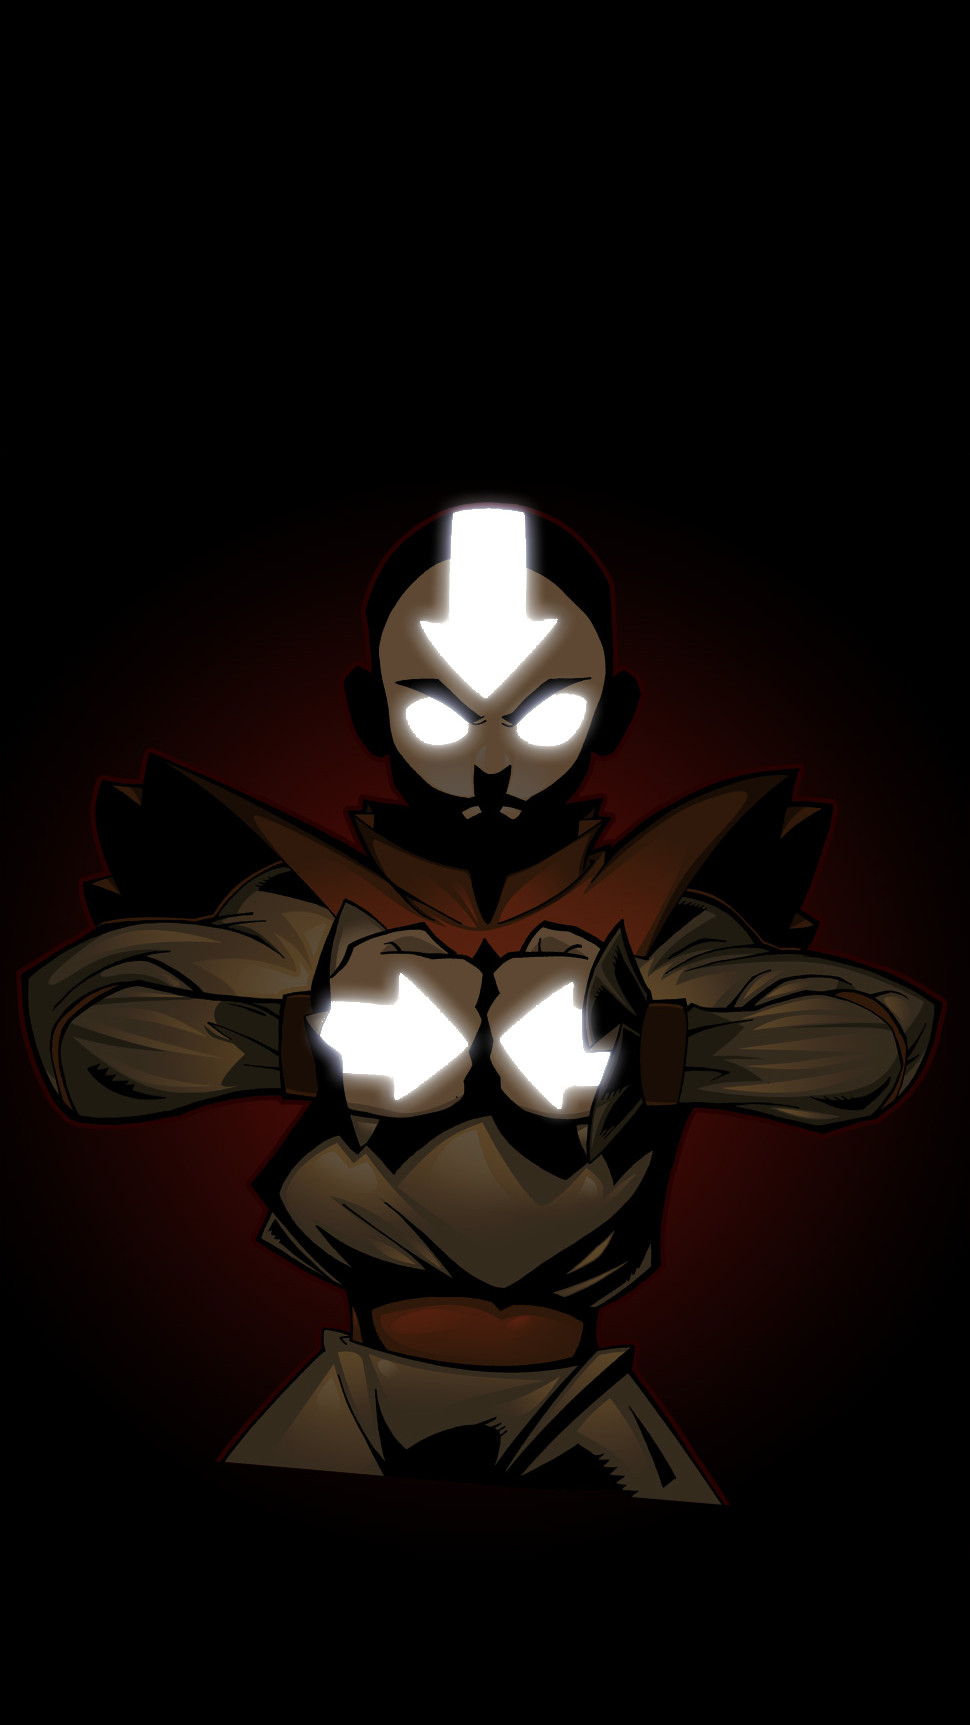 50 Aang Wallpaper On Wallpapersafari